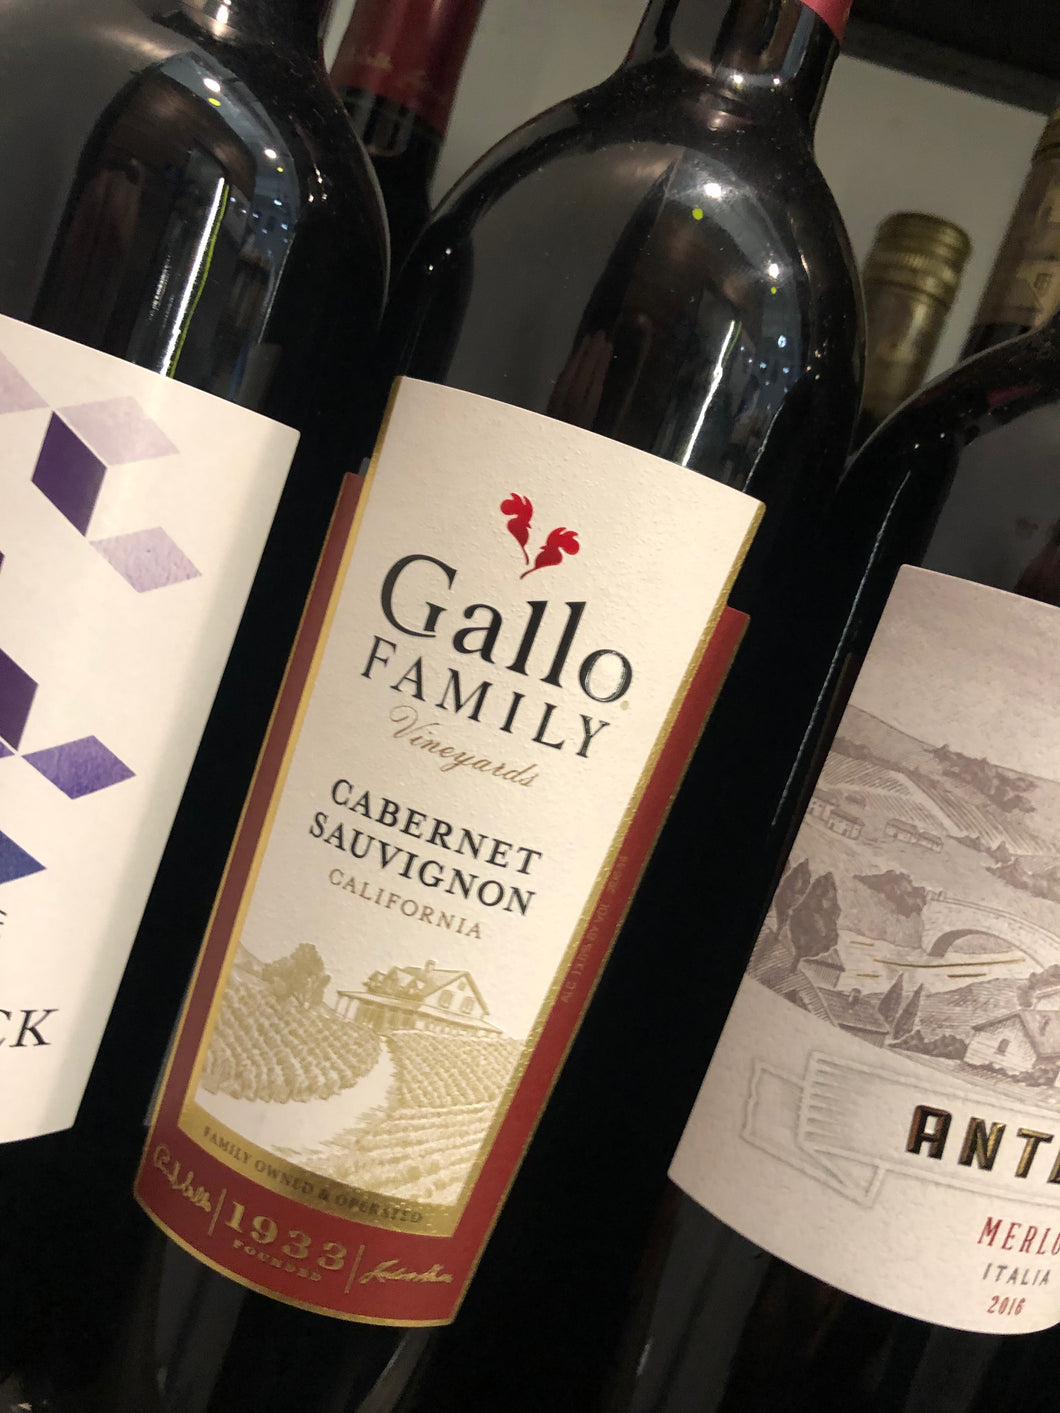 Gallo Family Cabernet Sauvignon